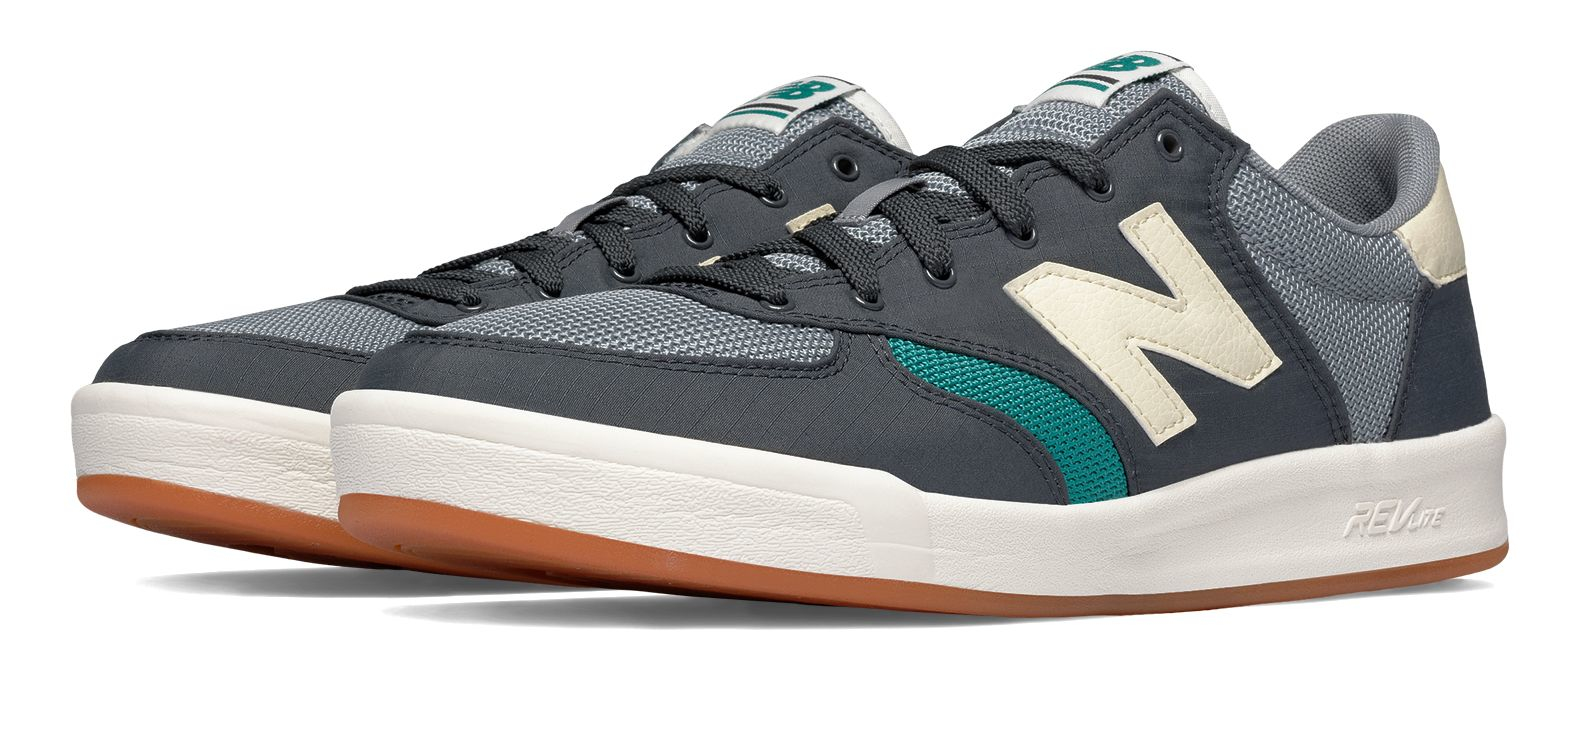 New Balance Other Shoe Lines